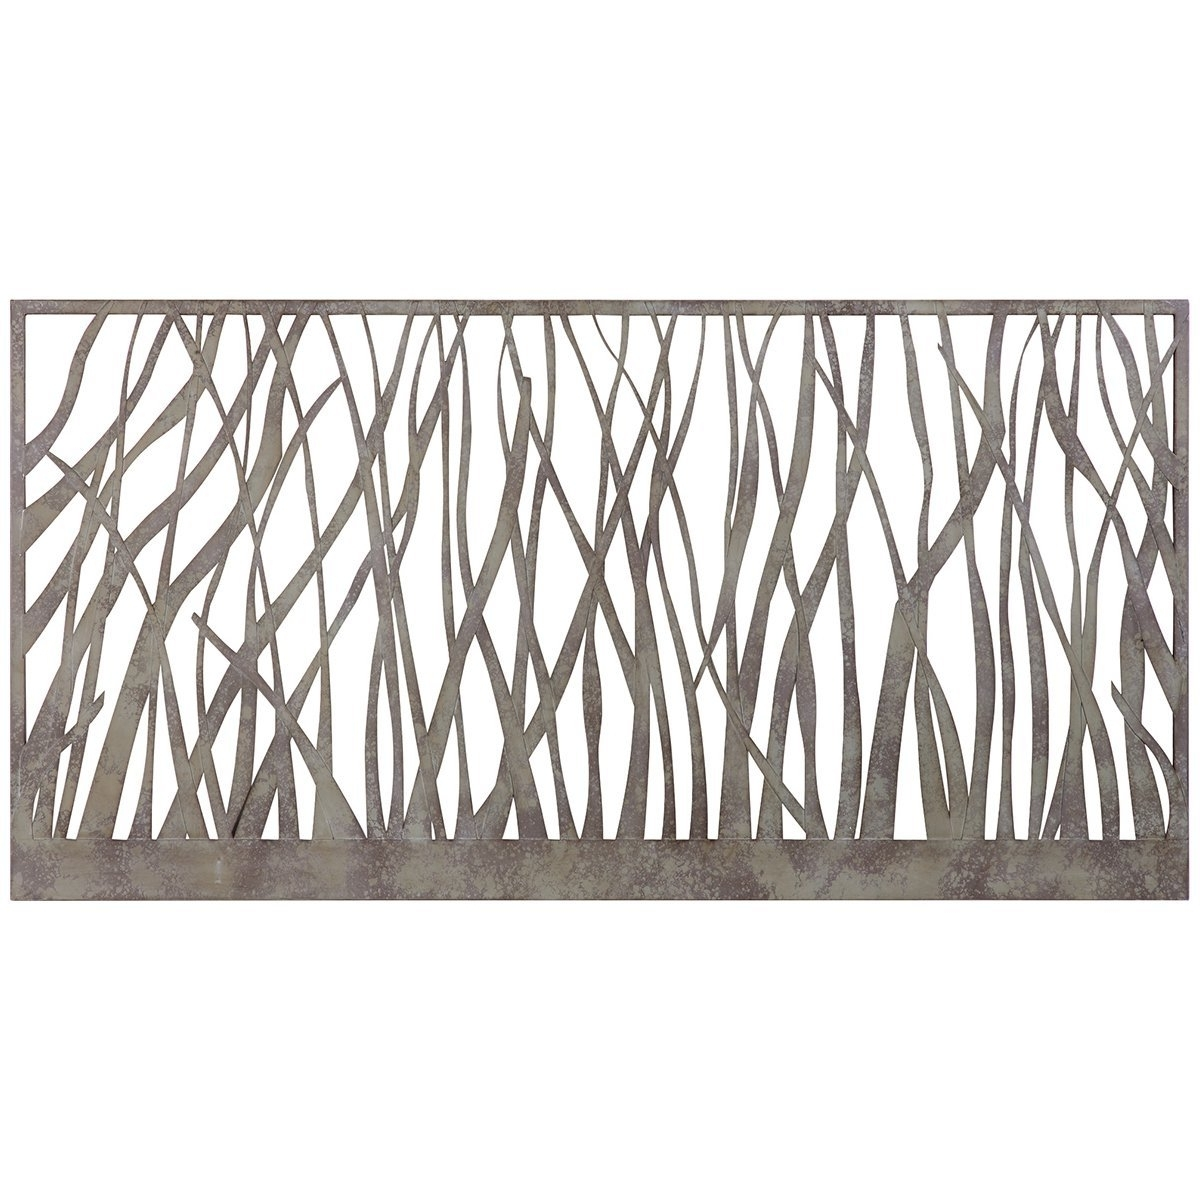 Uttermost Metal Wall Art Inside Trendy Amazon: Uttermost 13931 Amadahy Metal Wall Art: Home & Kitchen (View 12 of 15)